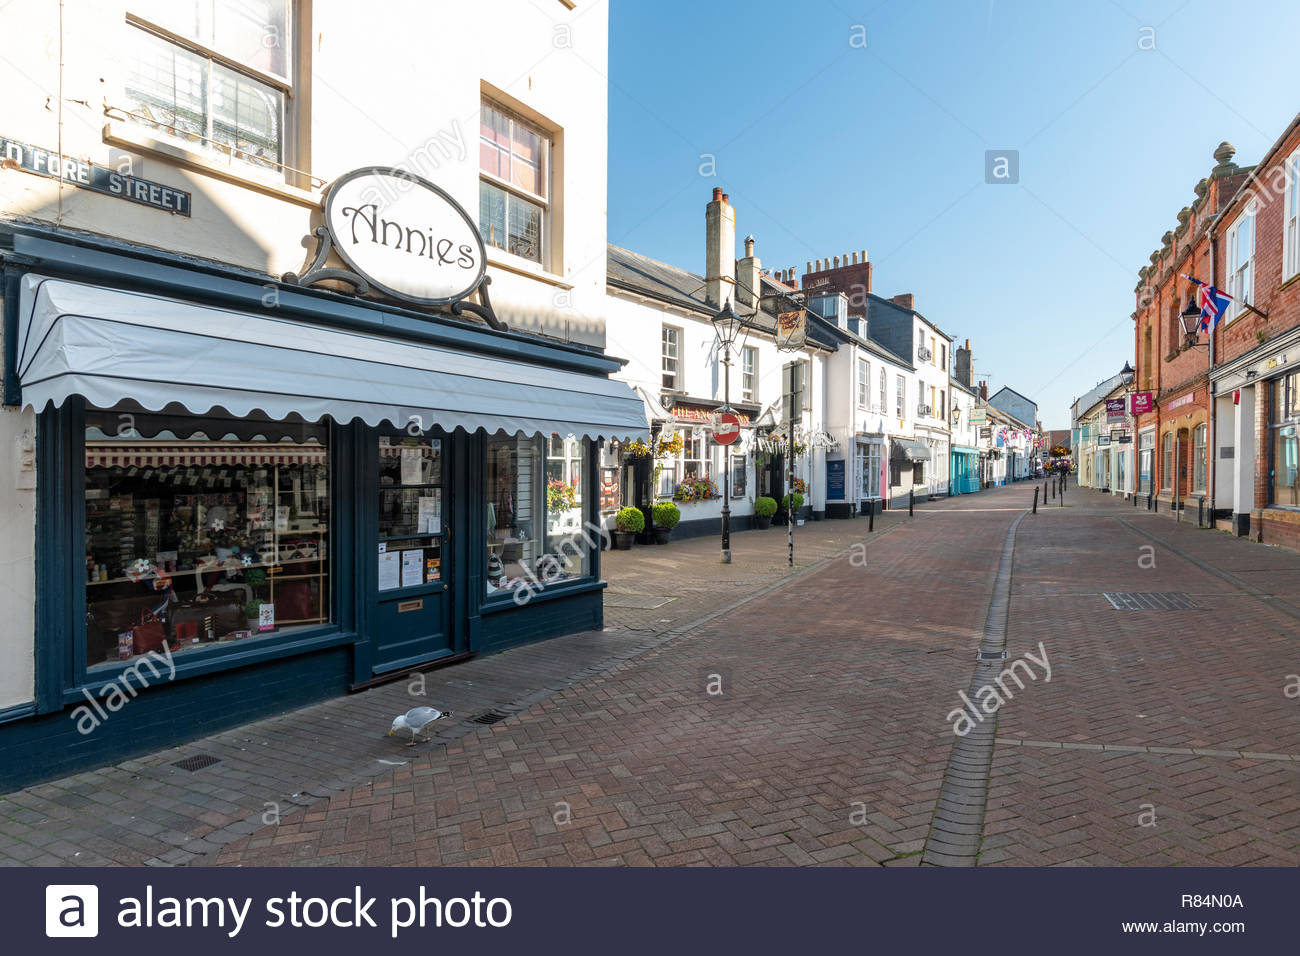 Shops in Old Fore Street, Pedestrianised street scene Sidmouth, Devon, England, Britain, UK - Stock Image